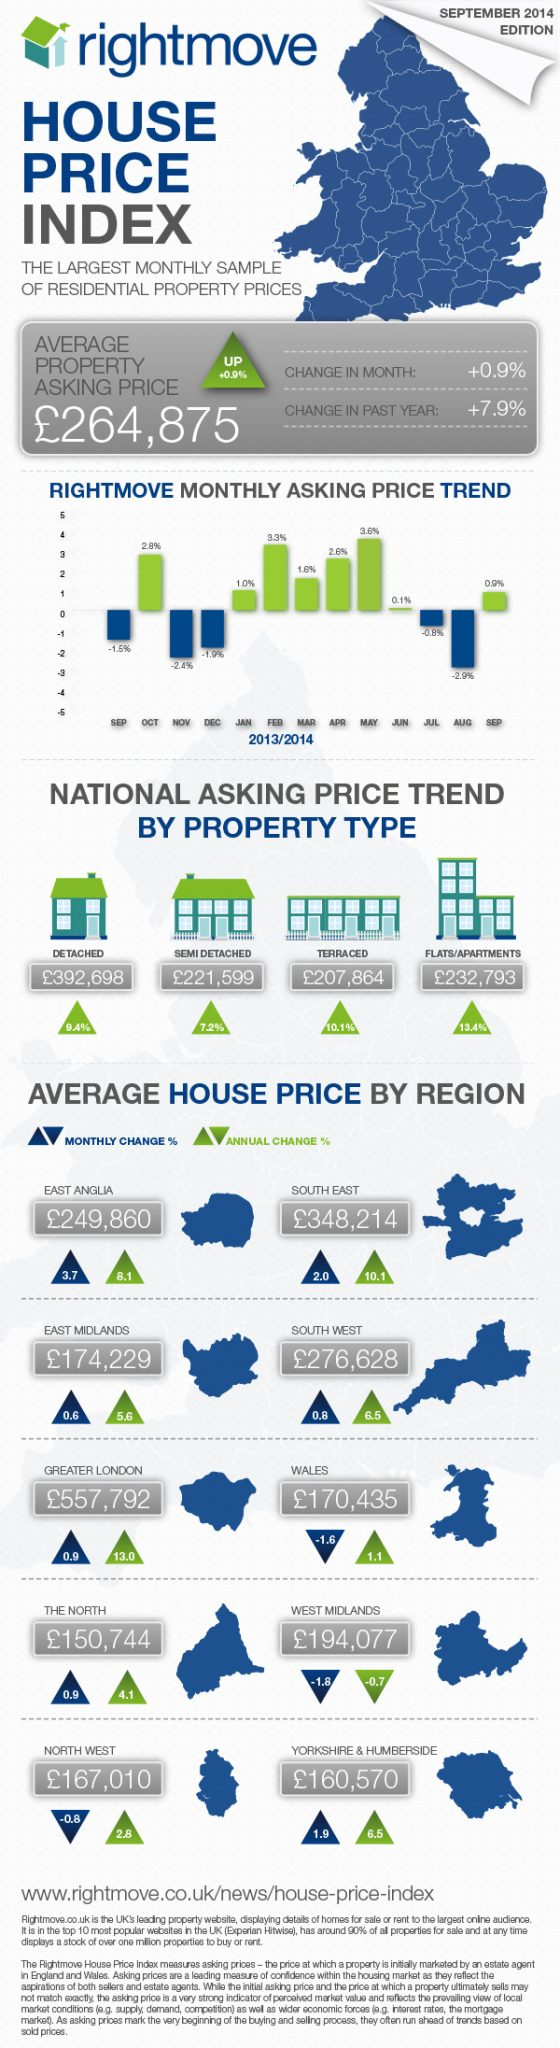 Rightmoves July HPI infographic